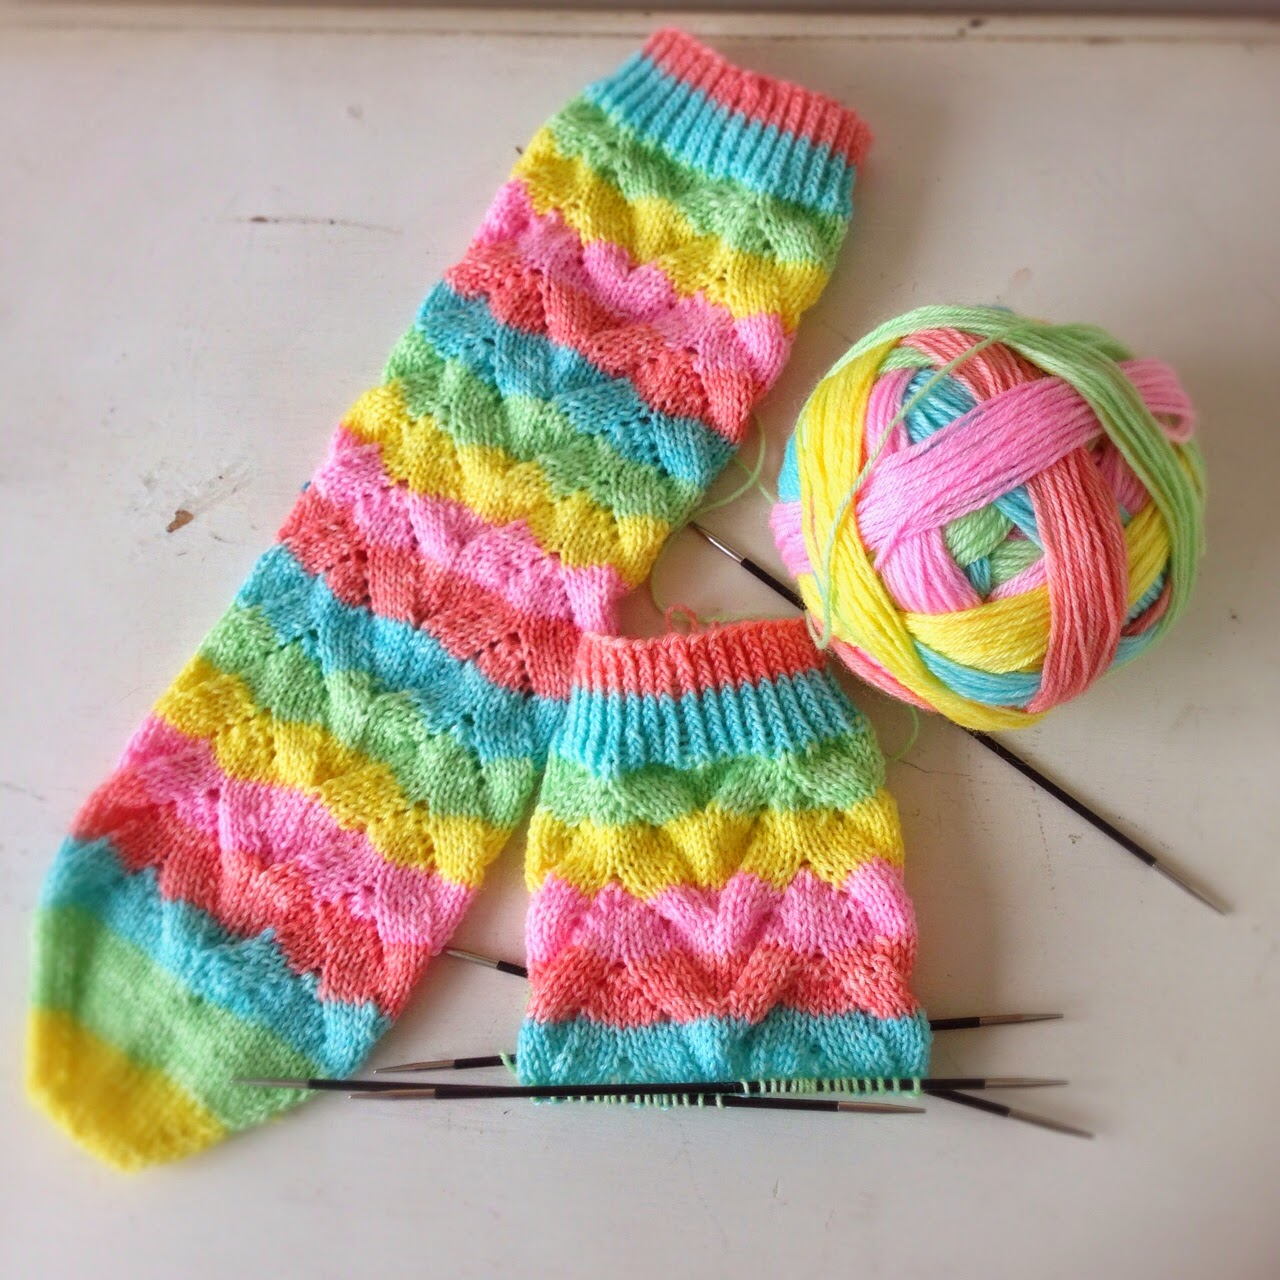 A World of Imagination: No Purl Monkey Socks......month of socks.